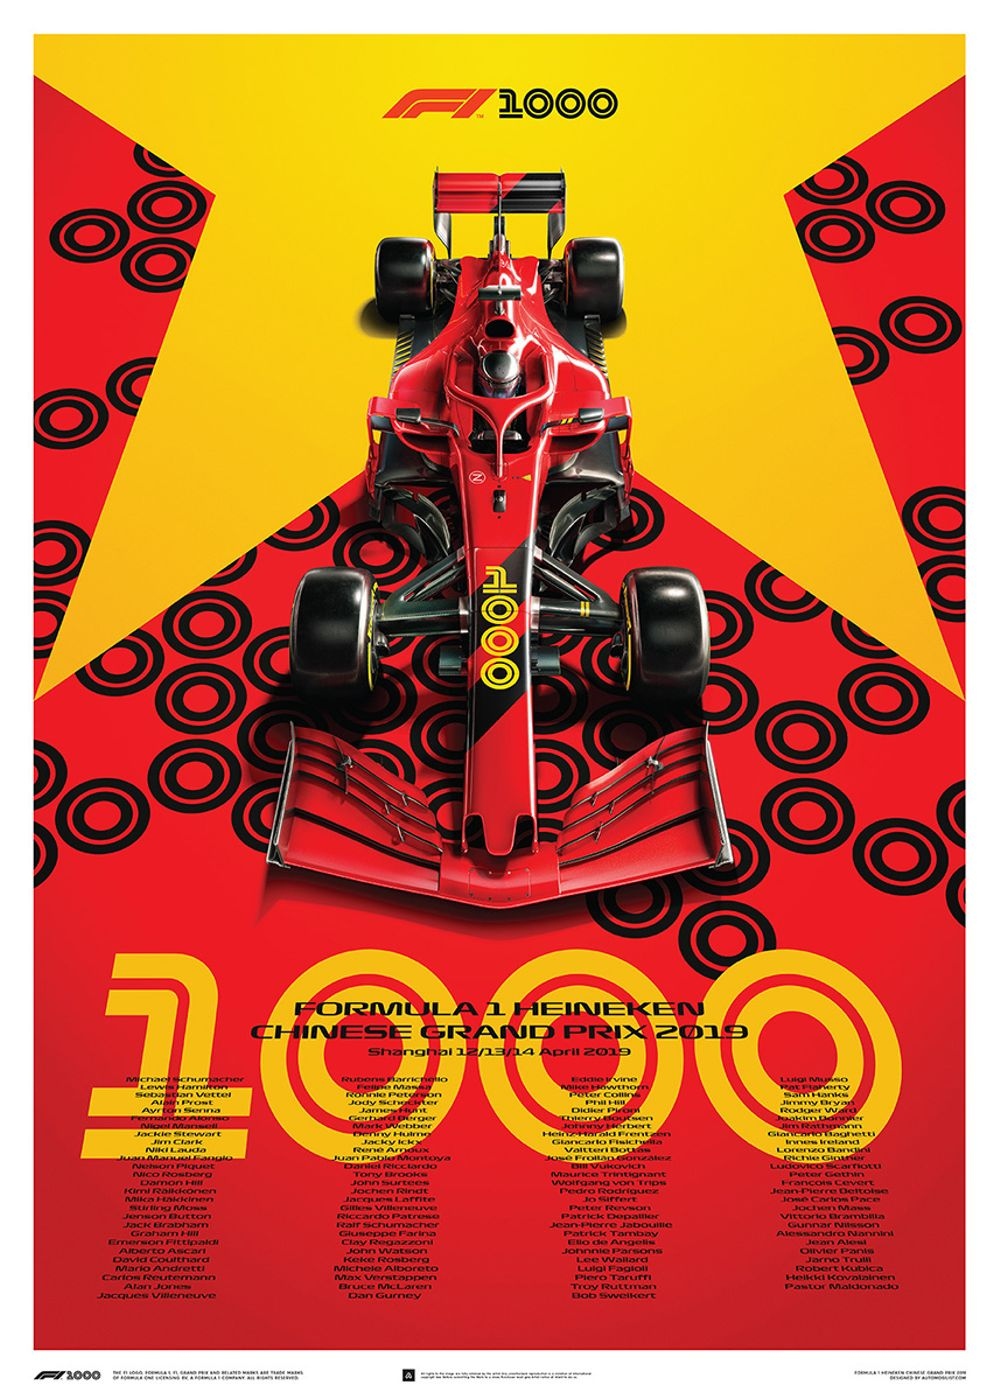 Decorative Infused Olive Oil: These Epic Posters Have Been Made To Celebrate F1's 1000th